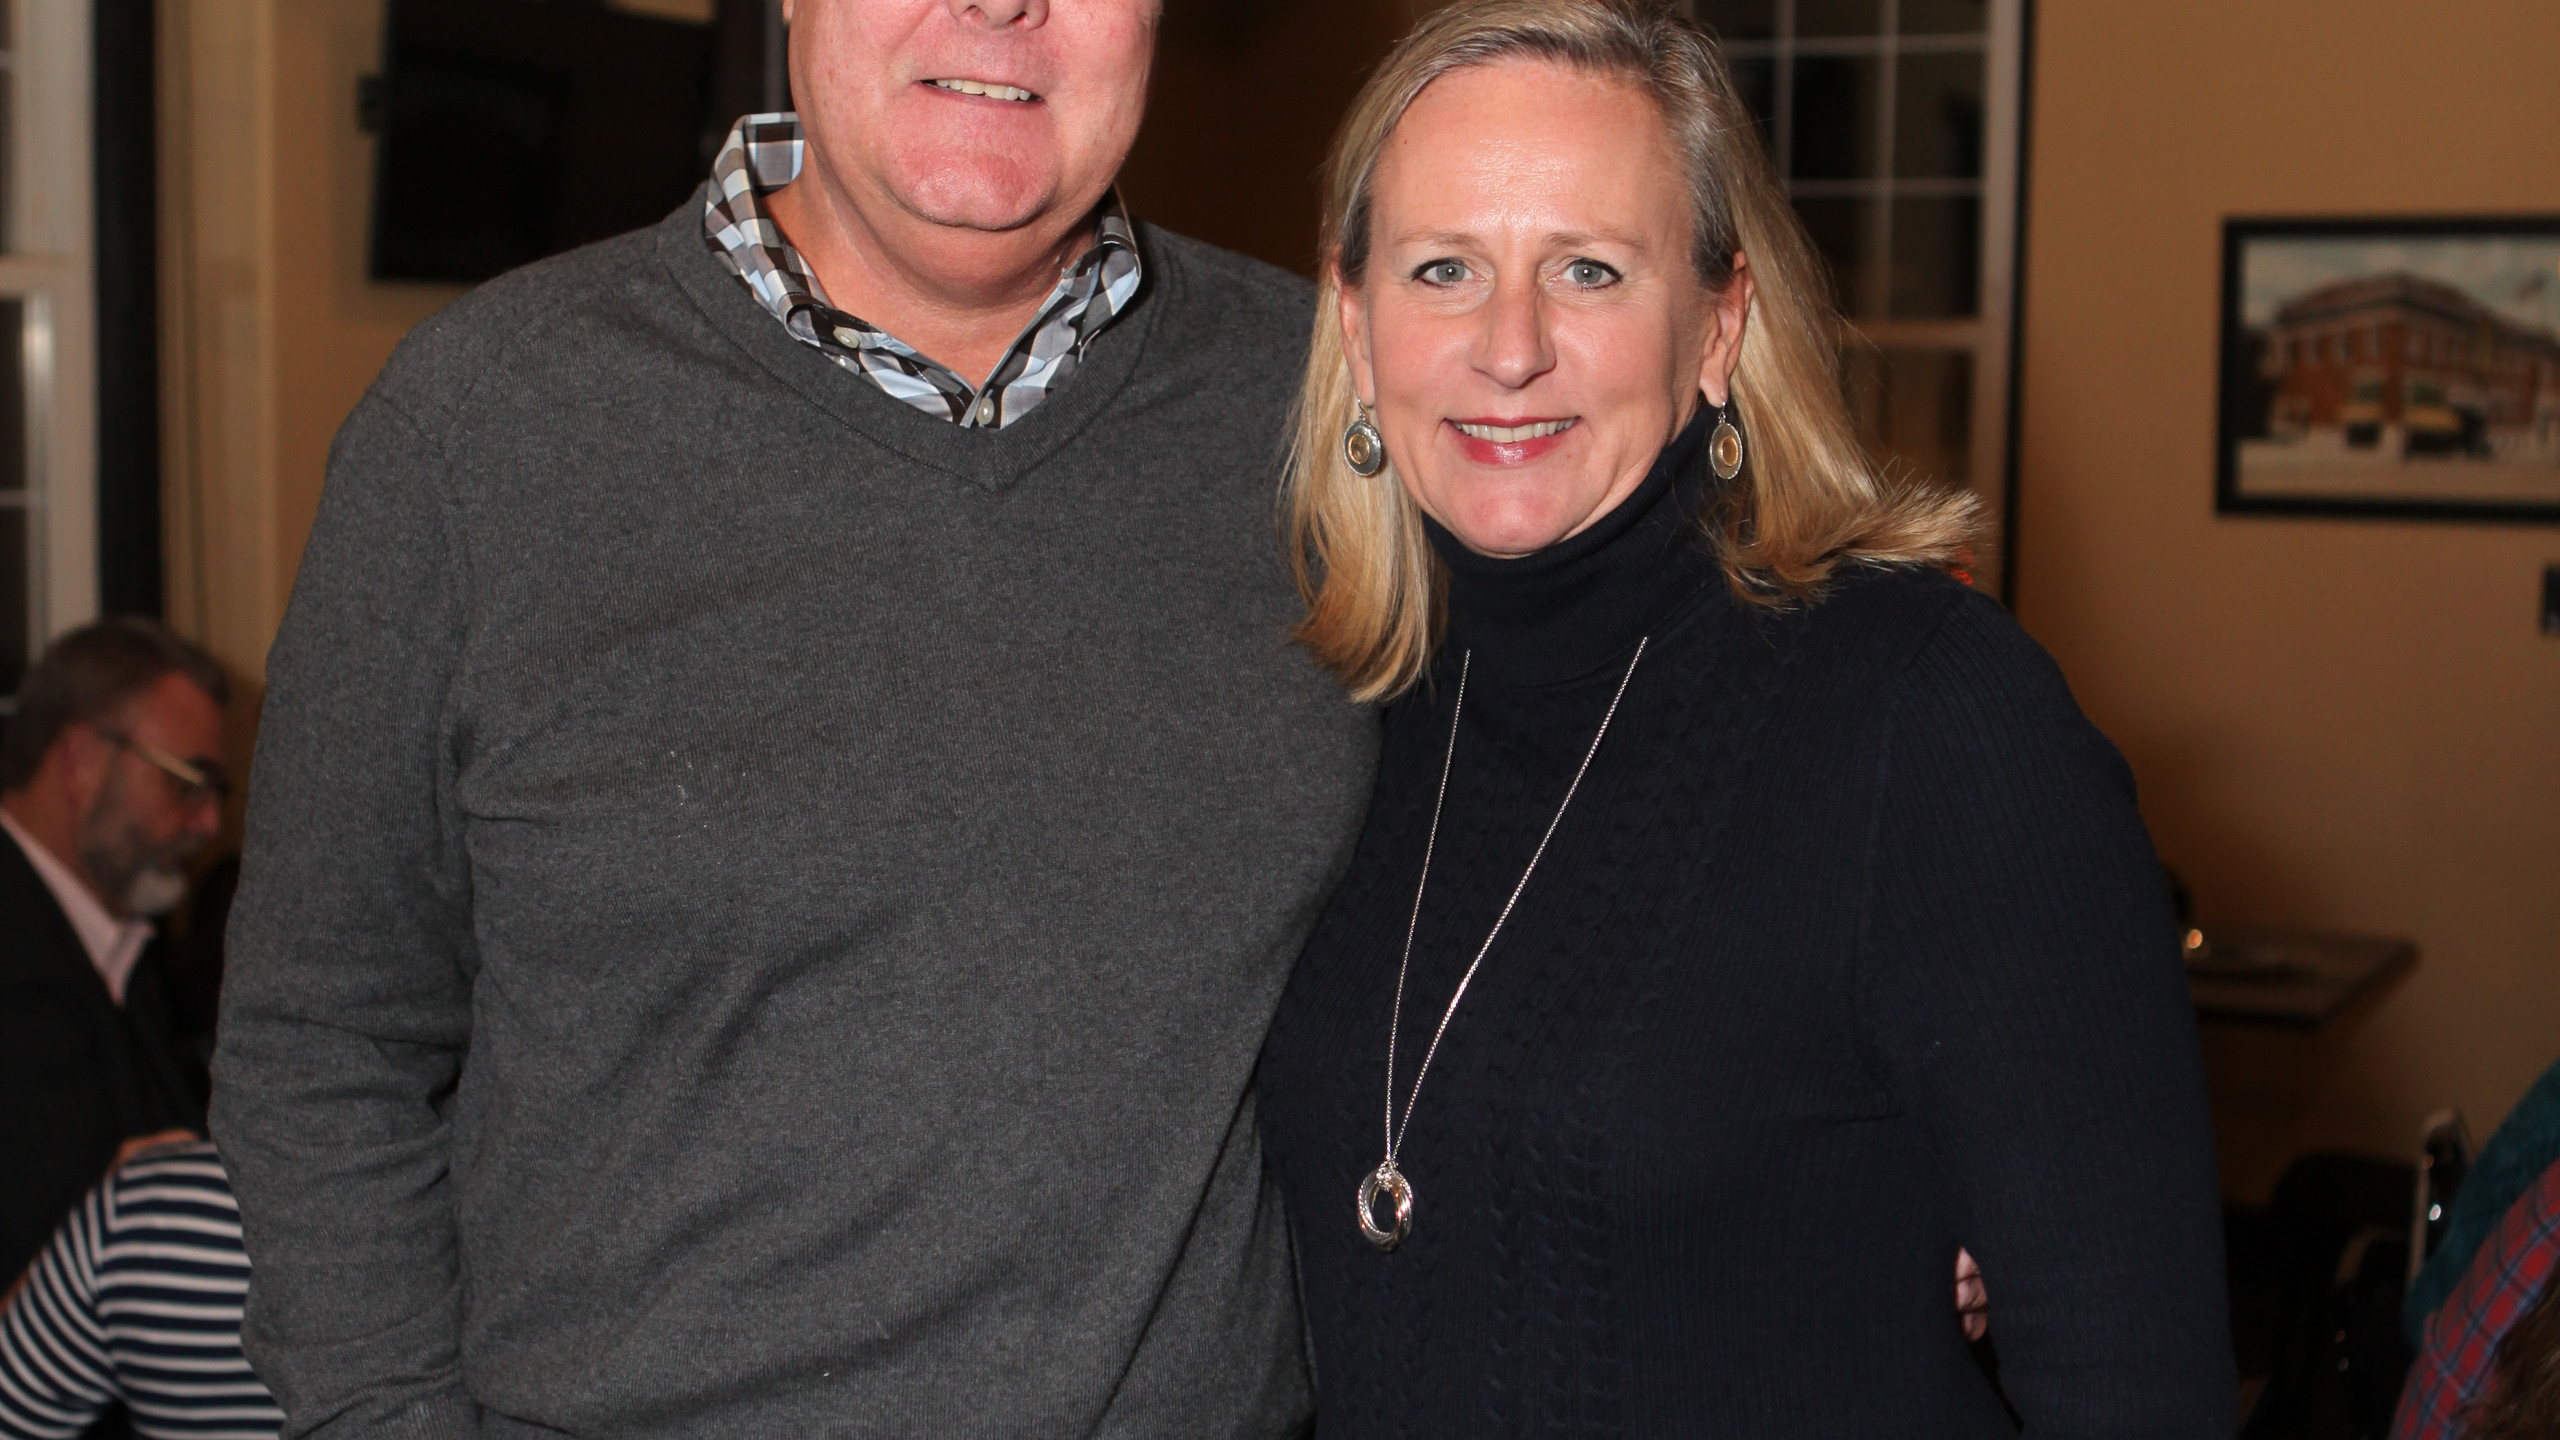 Charlie Ray, Sherry Howell